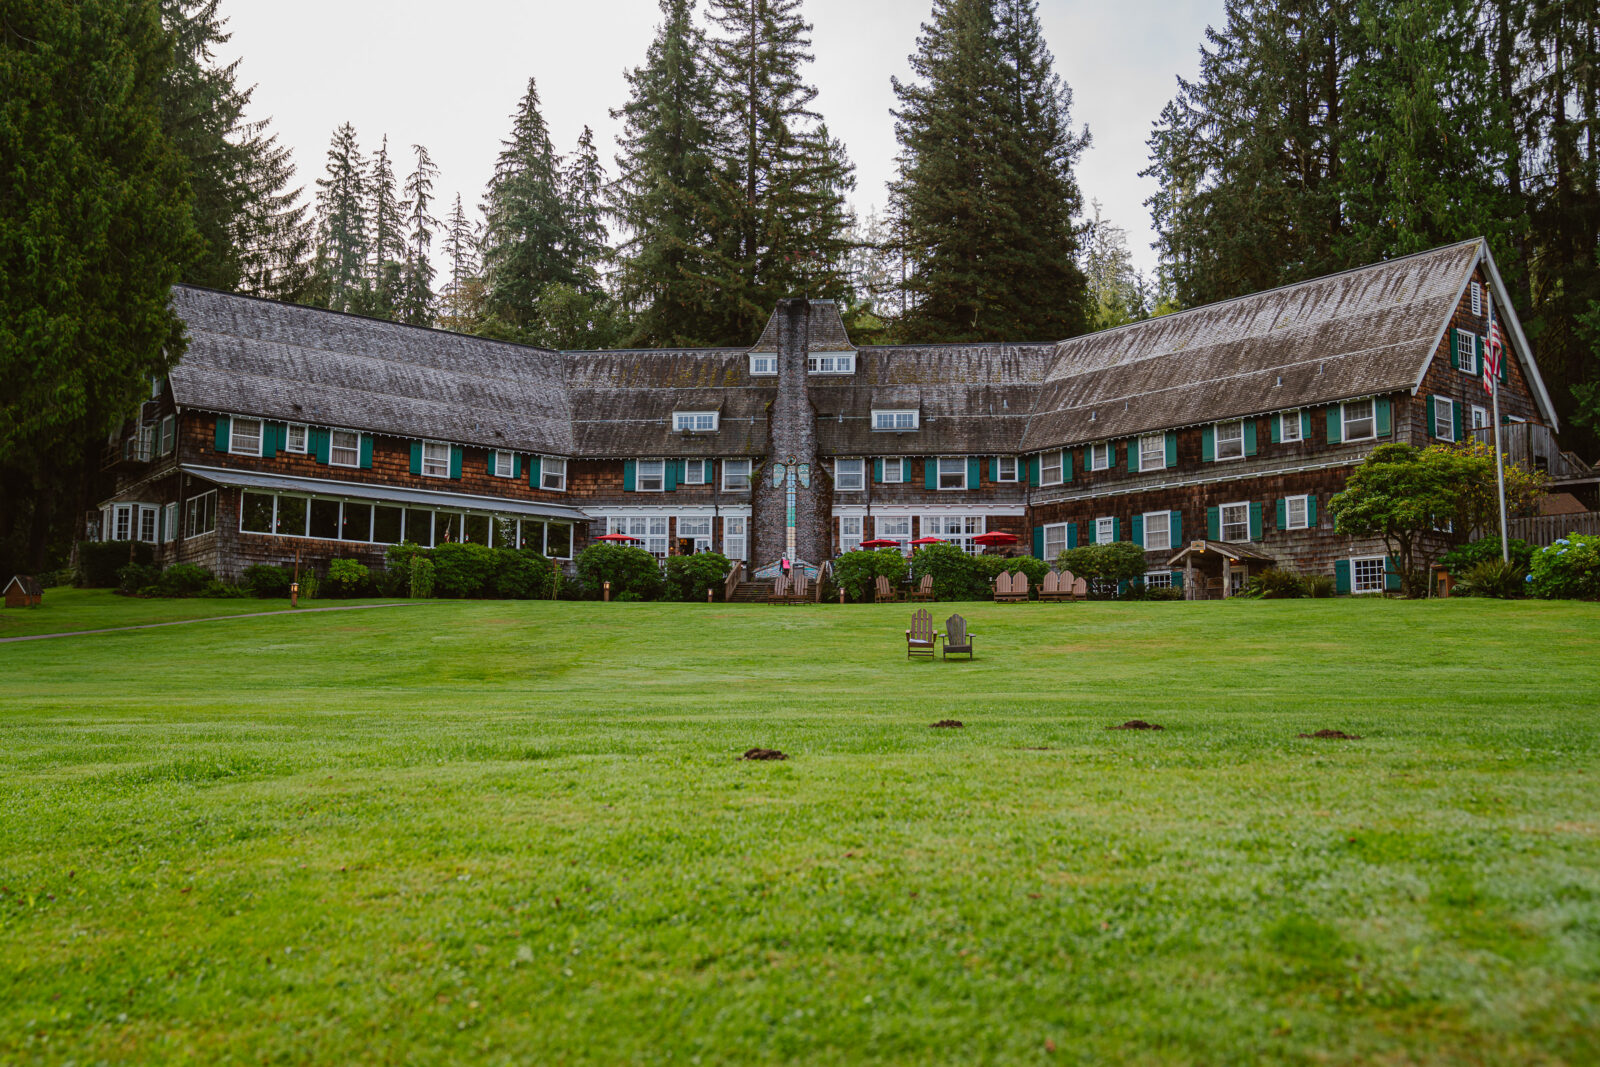 Lake Quinault Lodge in Olympic National Park